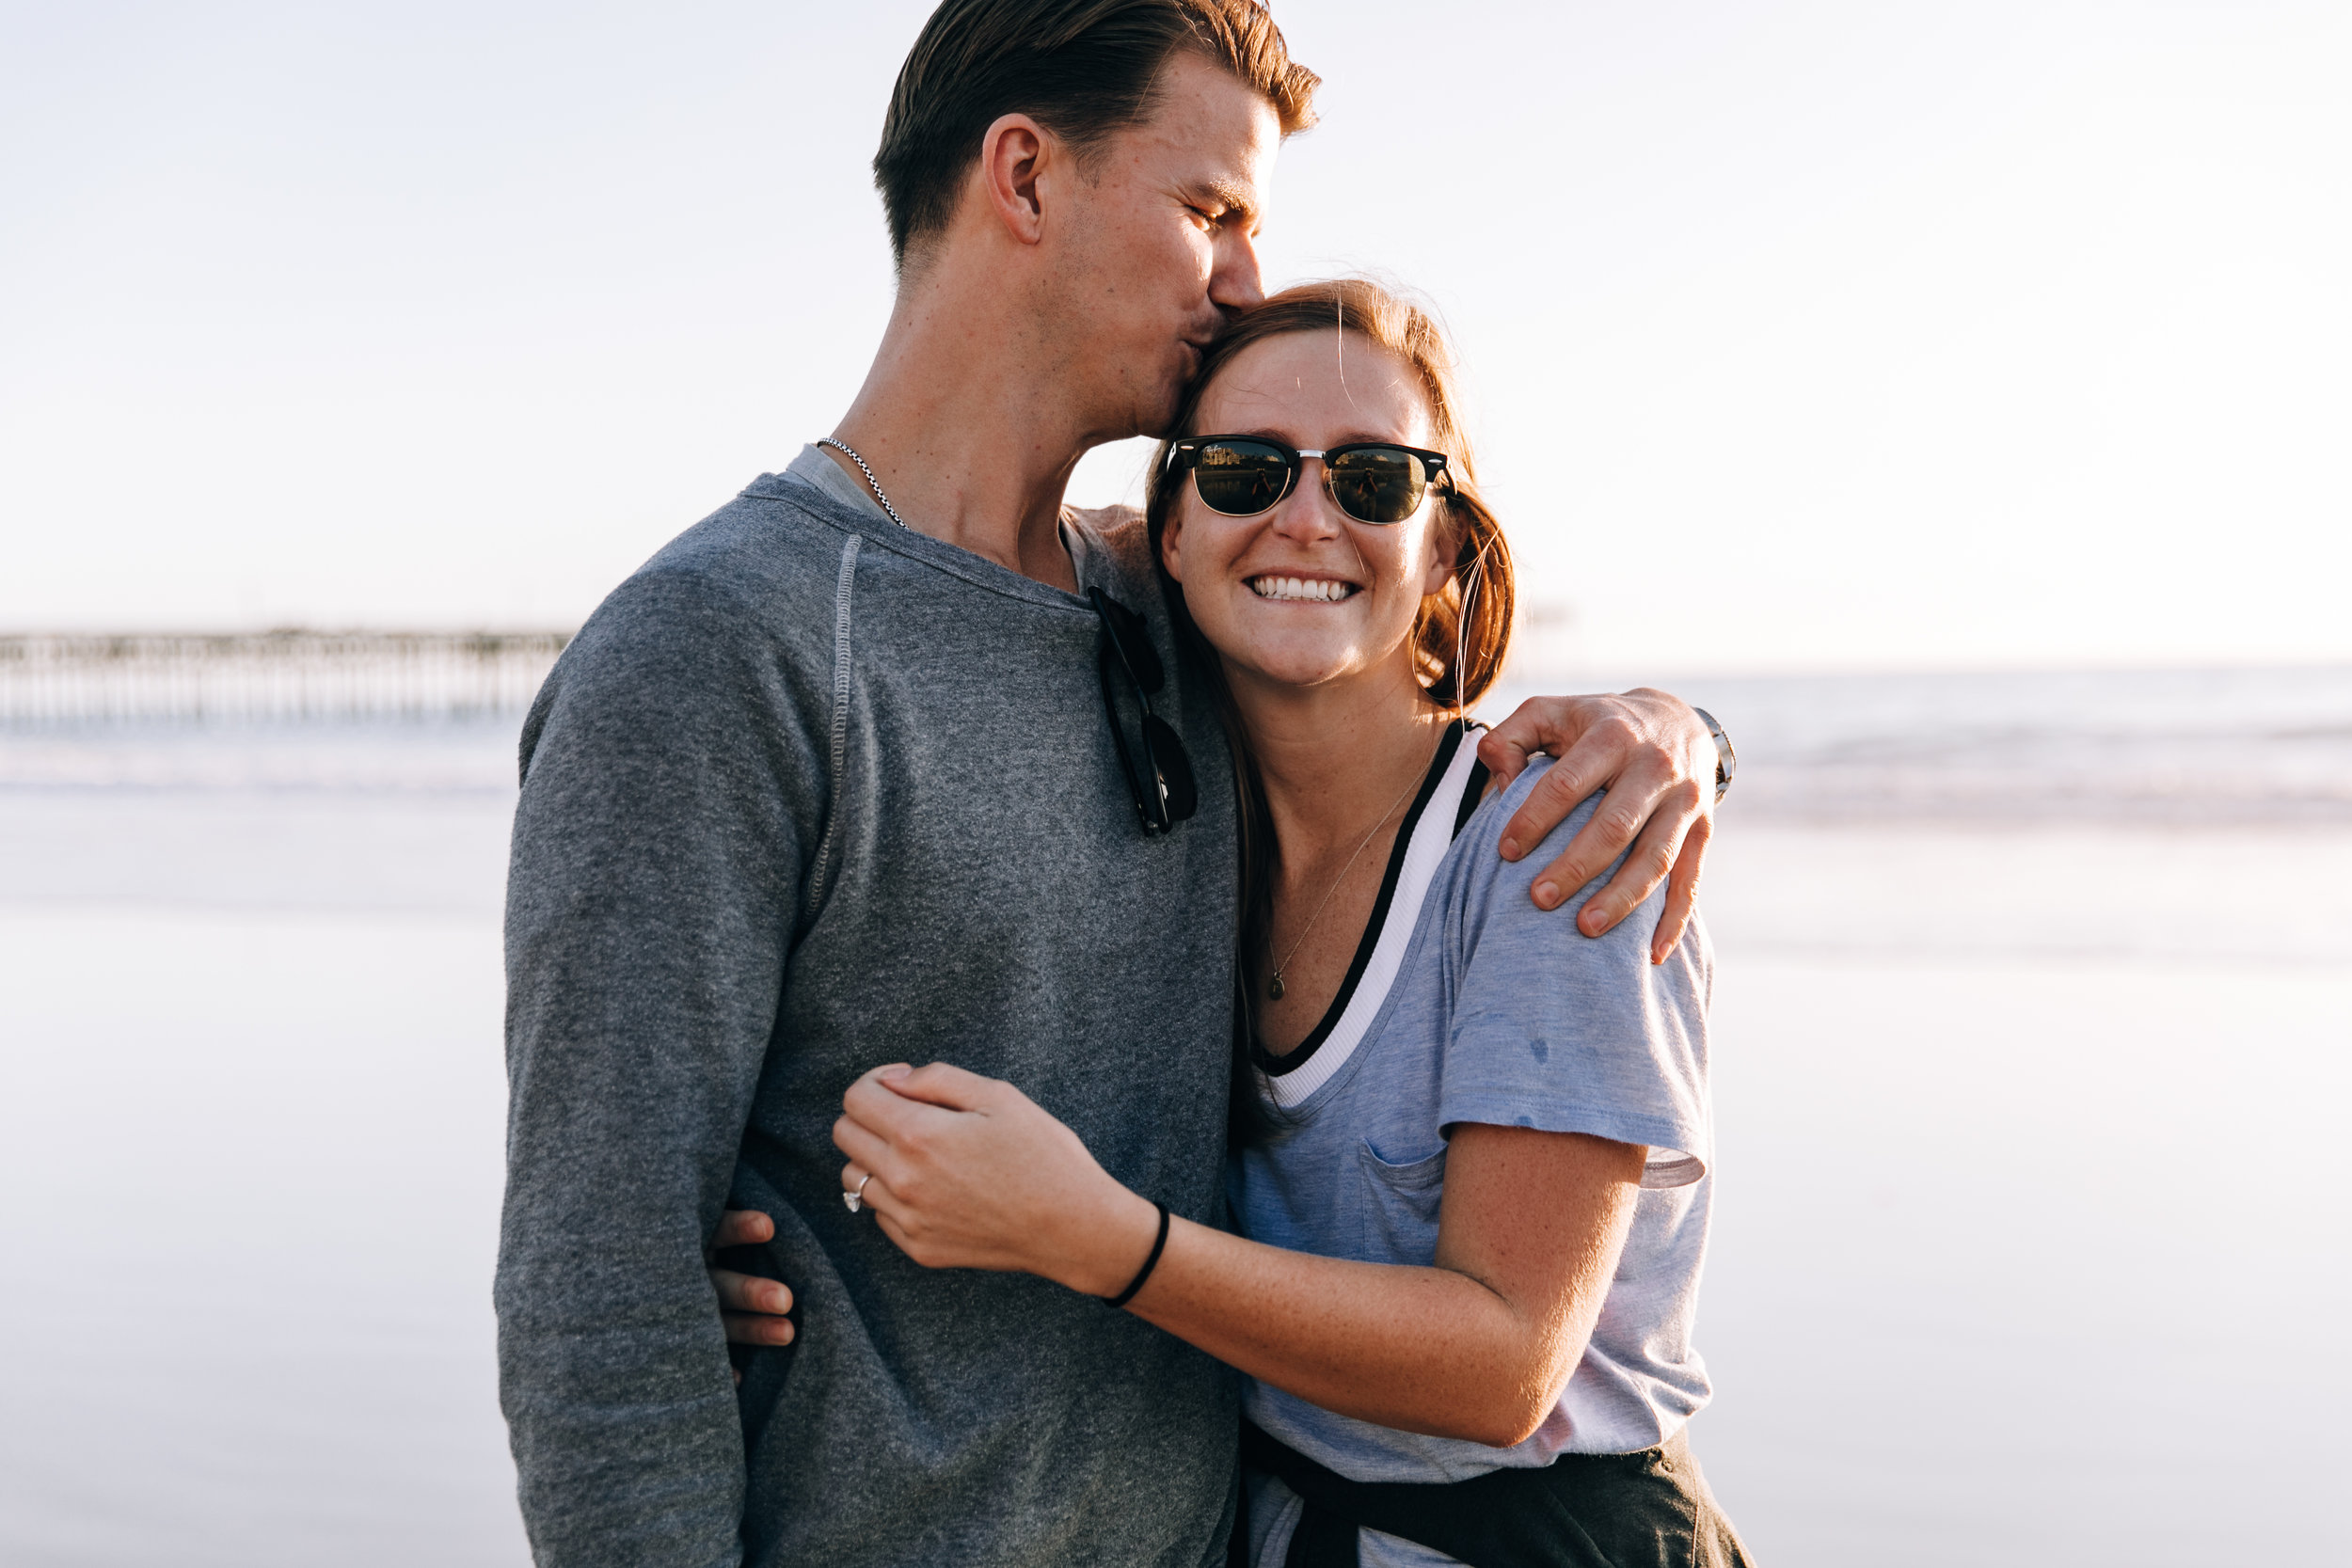 Orange County Photographer, OC Photographer, Orange County Engagement Session, San Clemente Pier Proposal, San Clemente Proposal, OC Proposal Photographer, Southern California Photographer